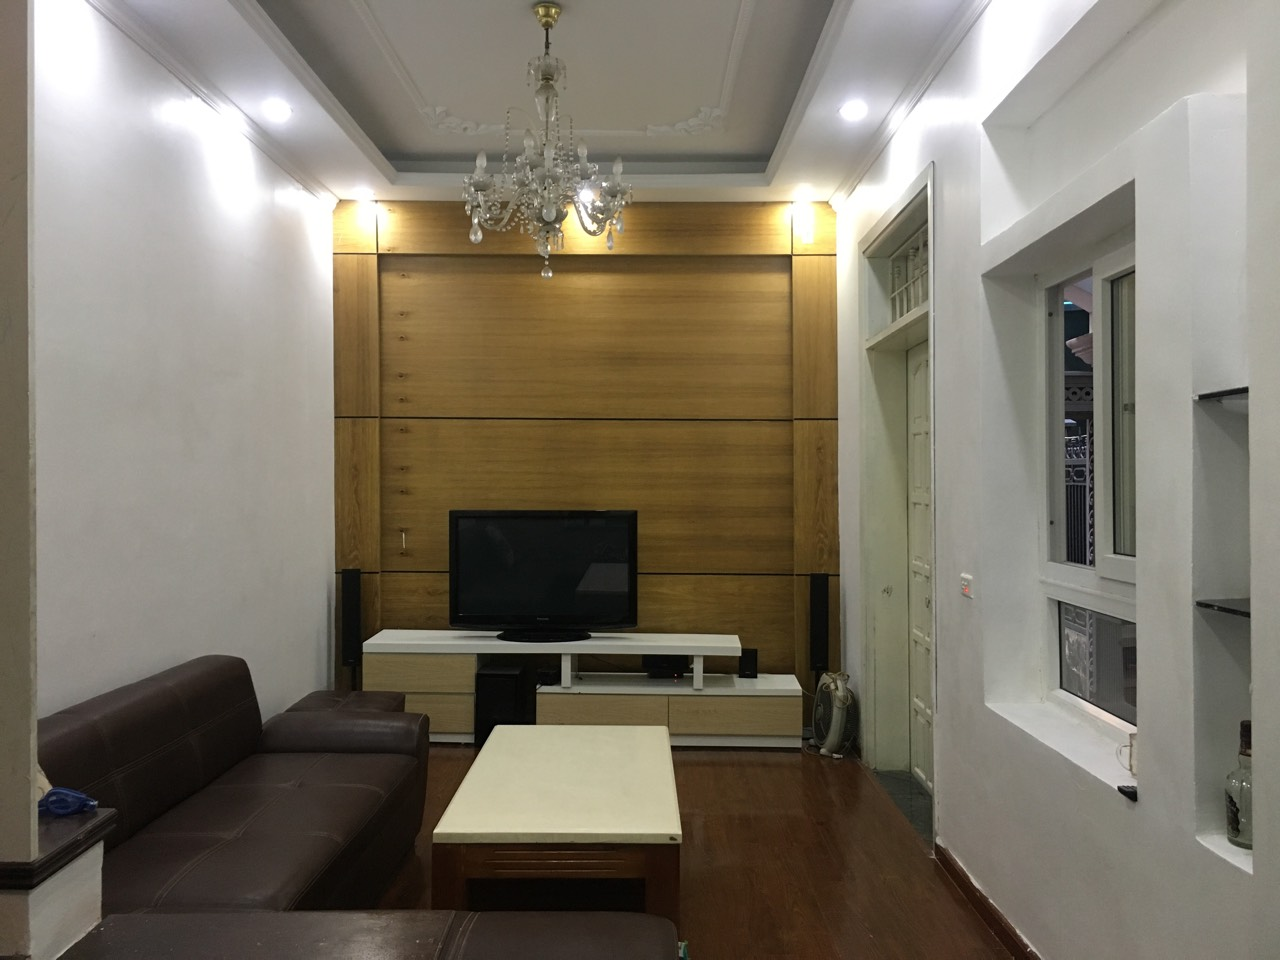 A 4-bedroom house for rent in Thuy Khe street, Tay Ho district, Hanoi!